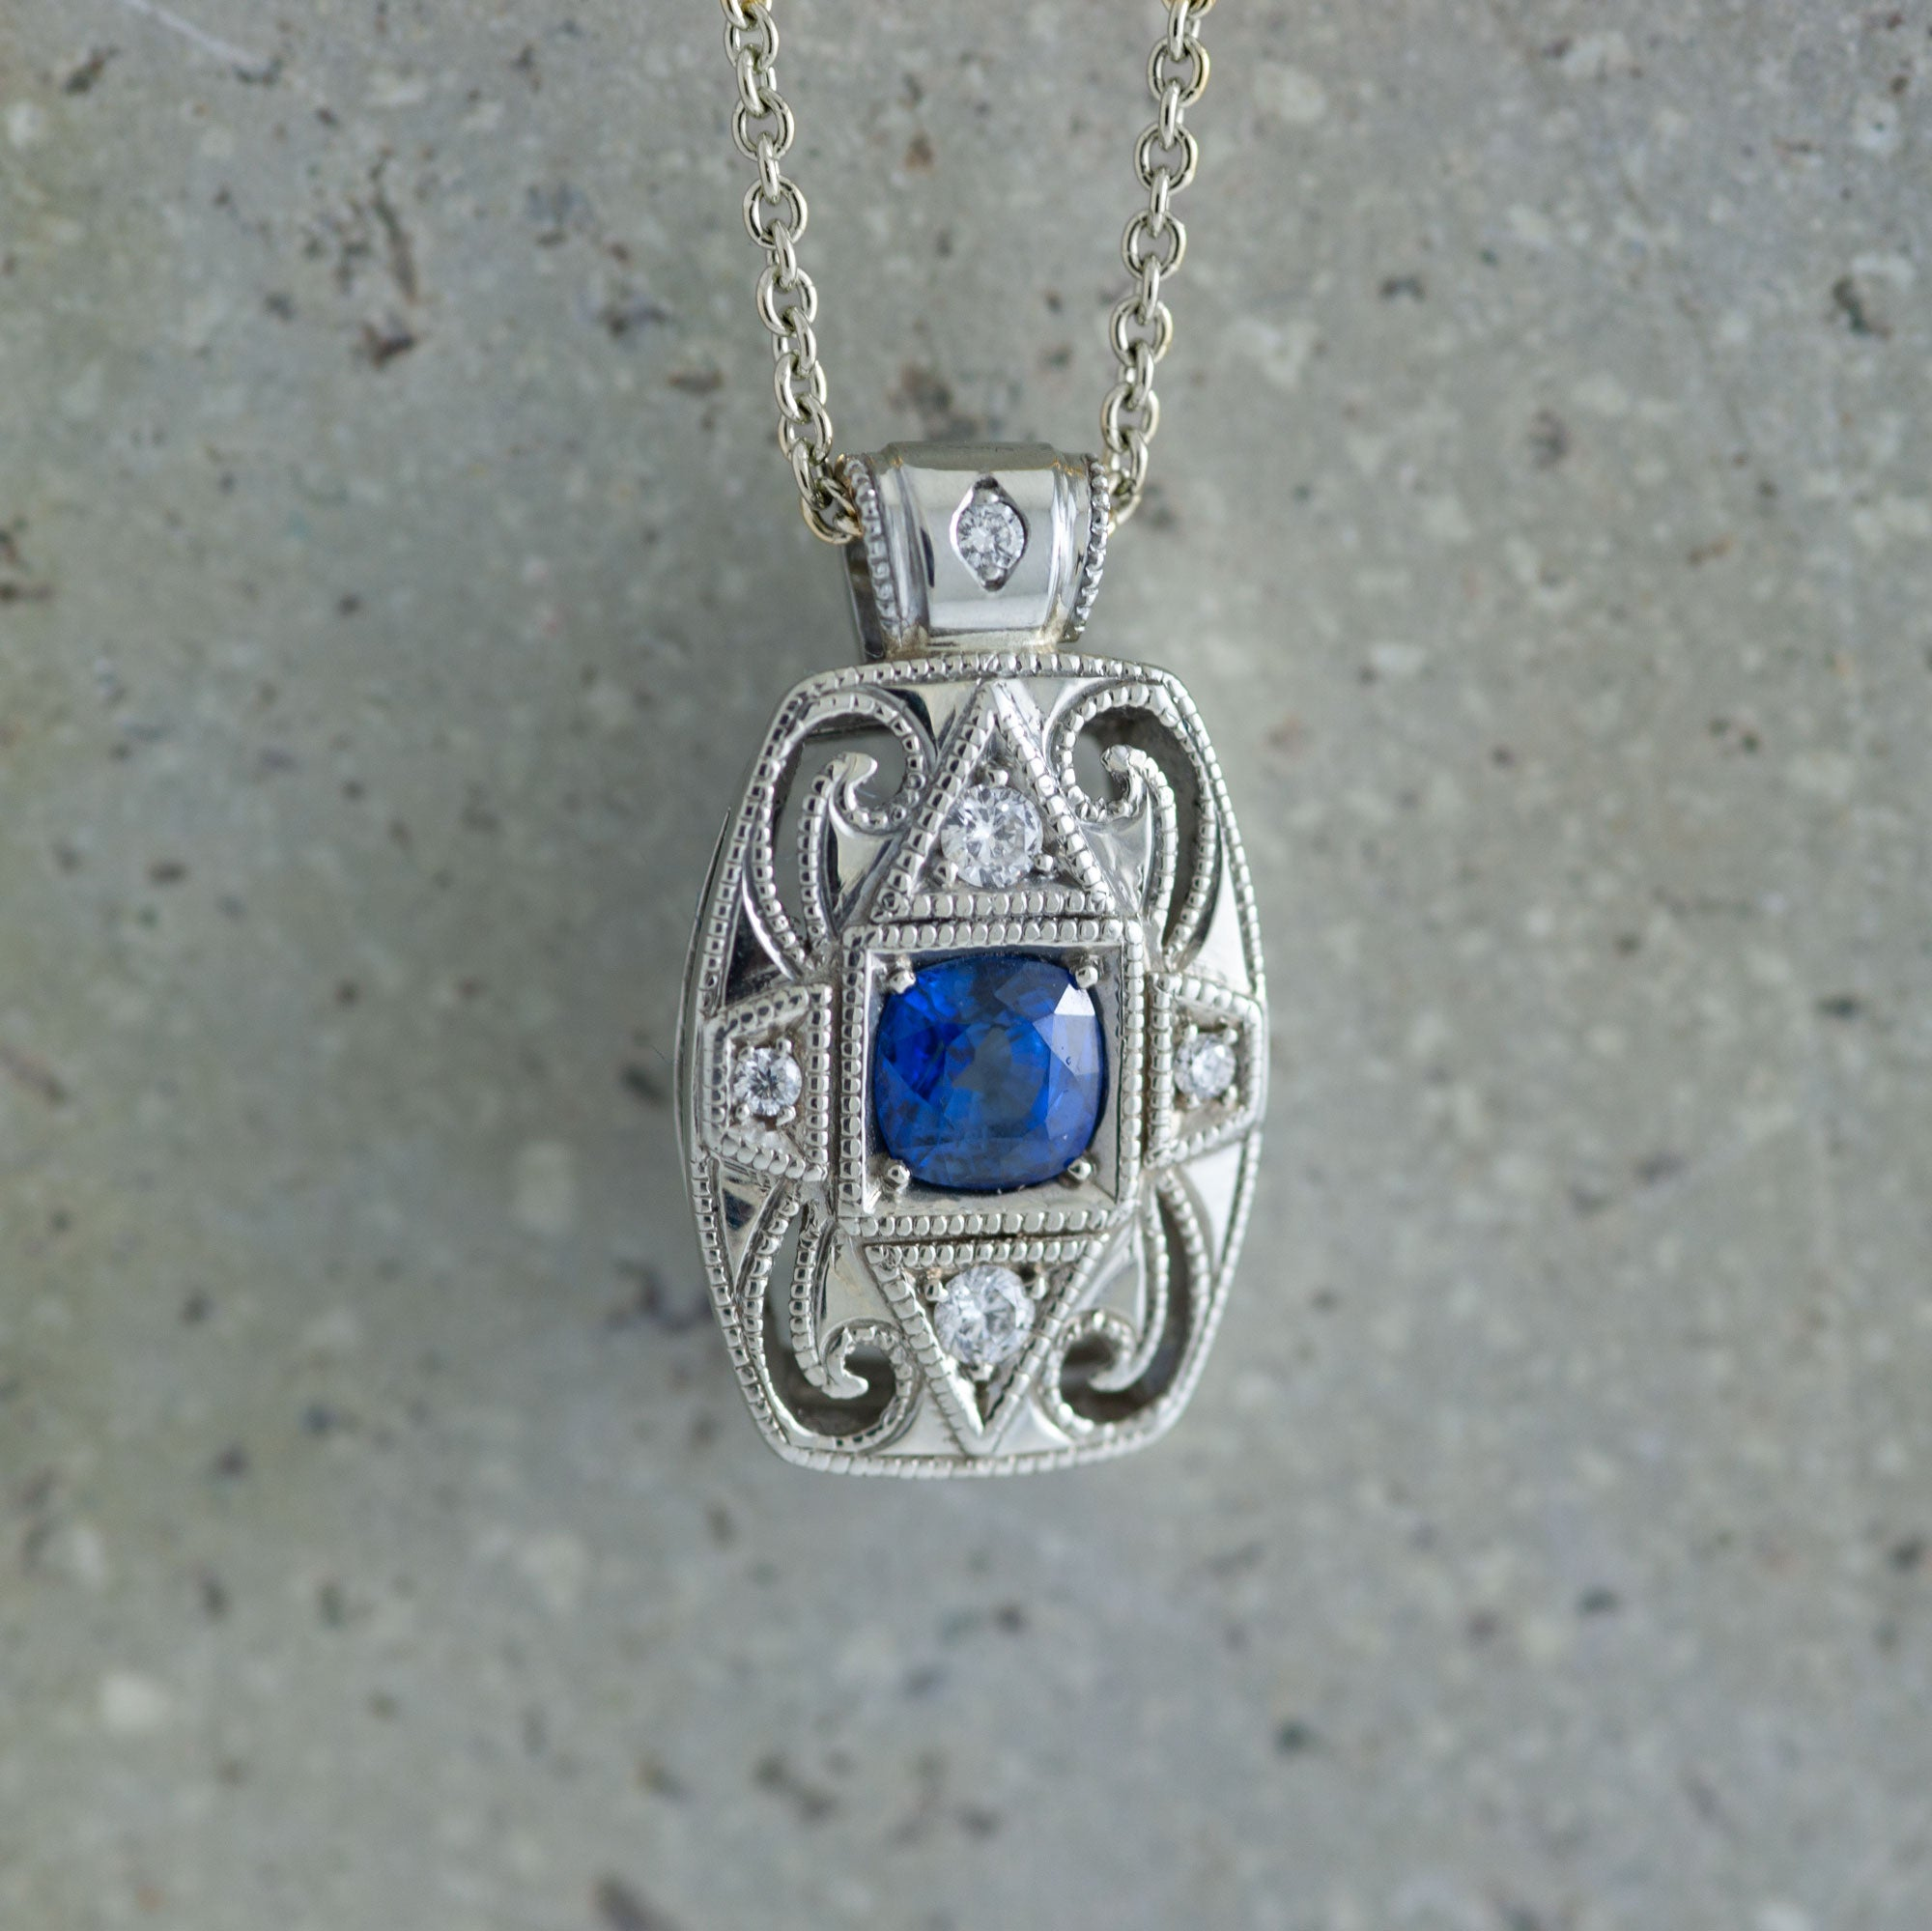 Diamond and Sapphire Pendant | Era Design Vancouver Canada